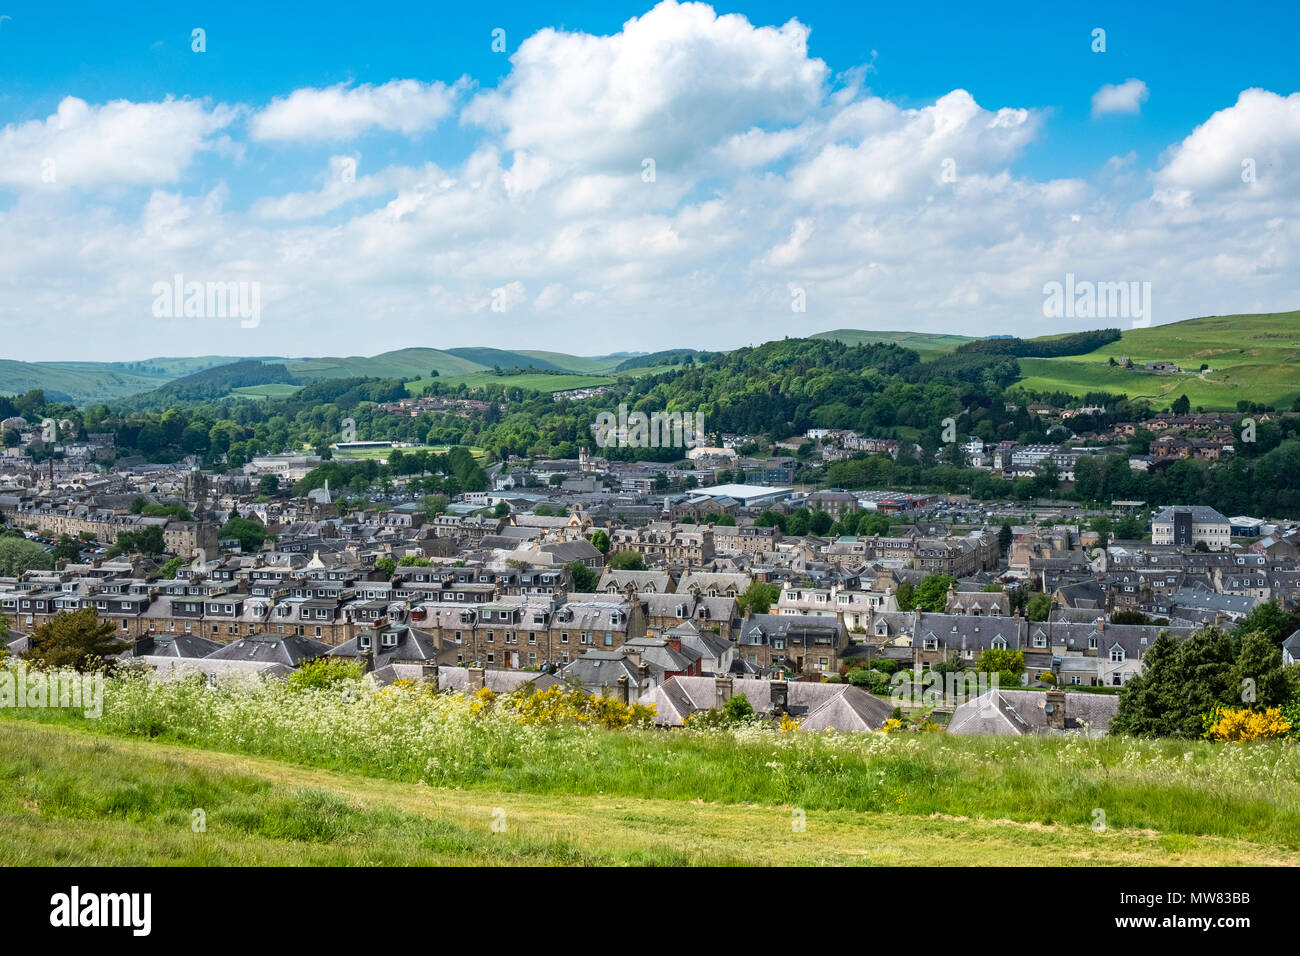 View over the town of Hawick in the Scottish Borders, Scotland, UK - Stock Image